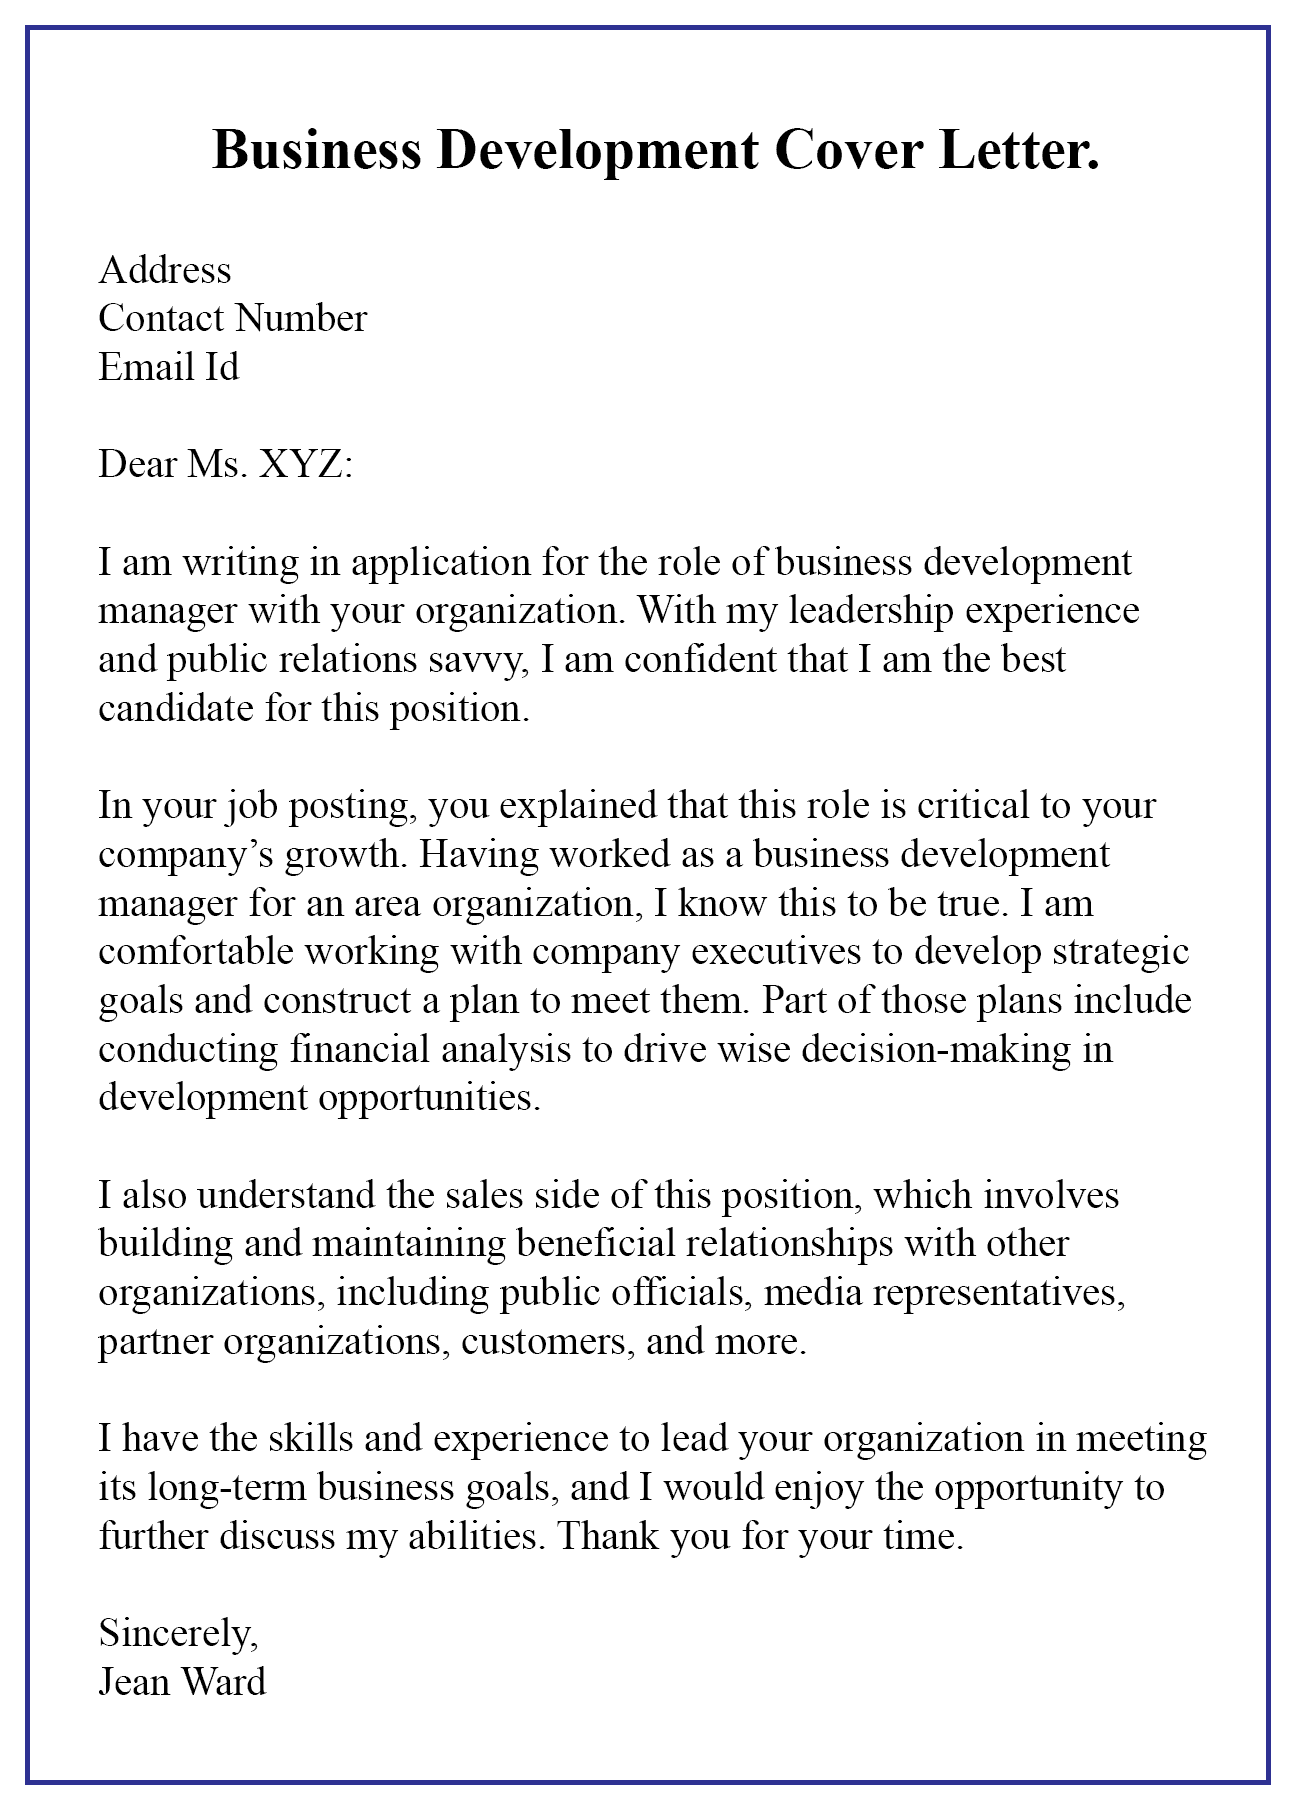 Public Relations Executive Cover Letter How To Write A Business Development Cover Letter With Samples